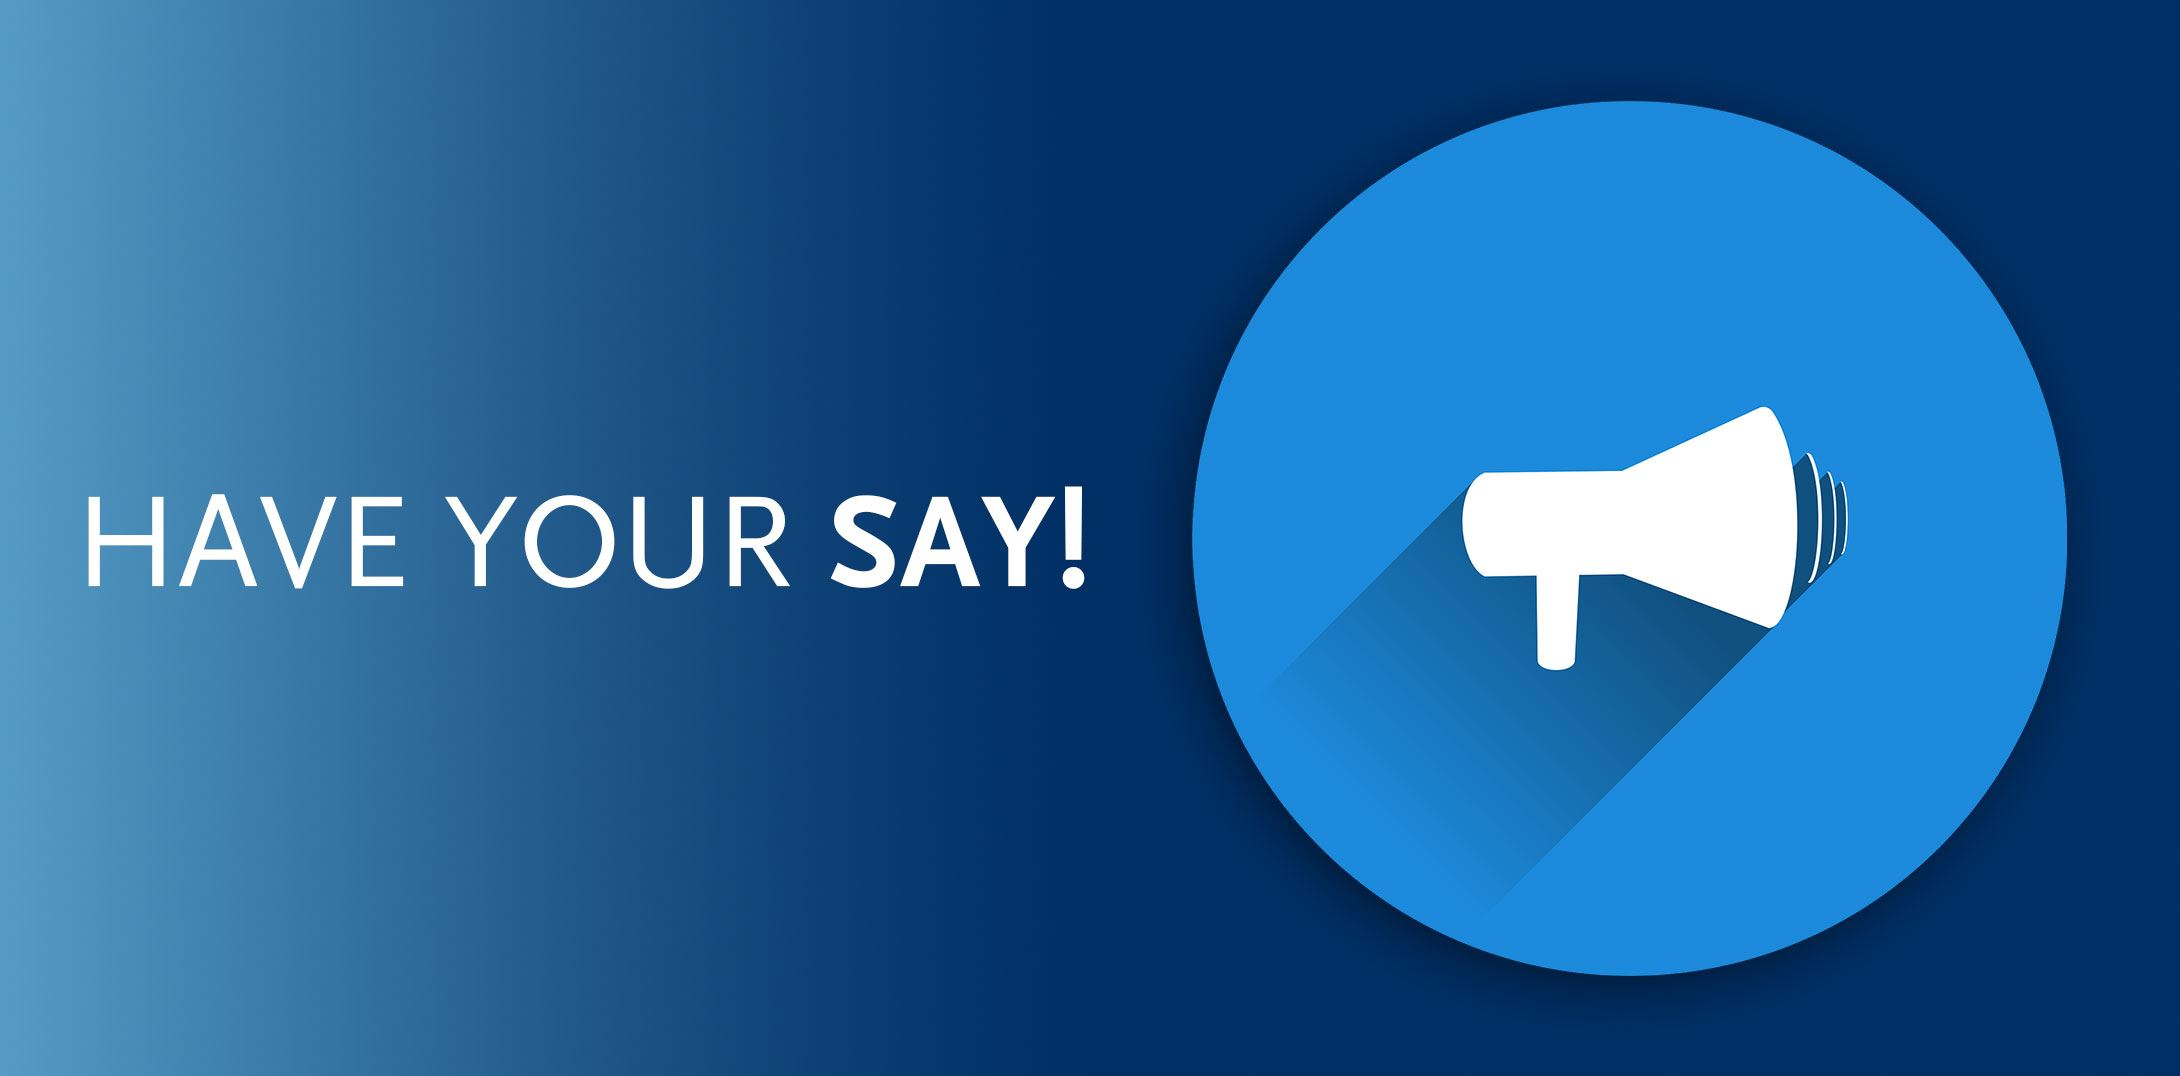 Have your say! Opens in new window